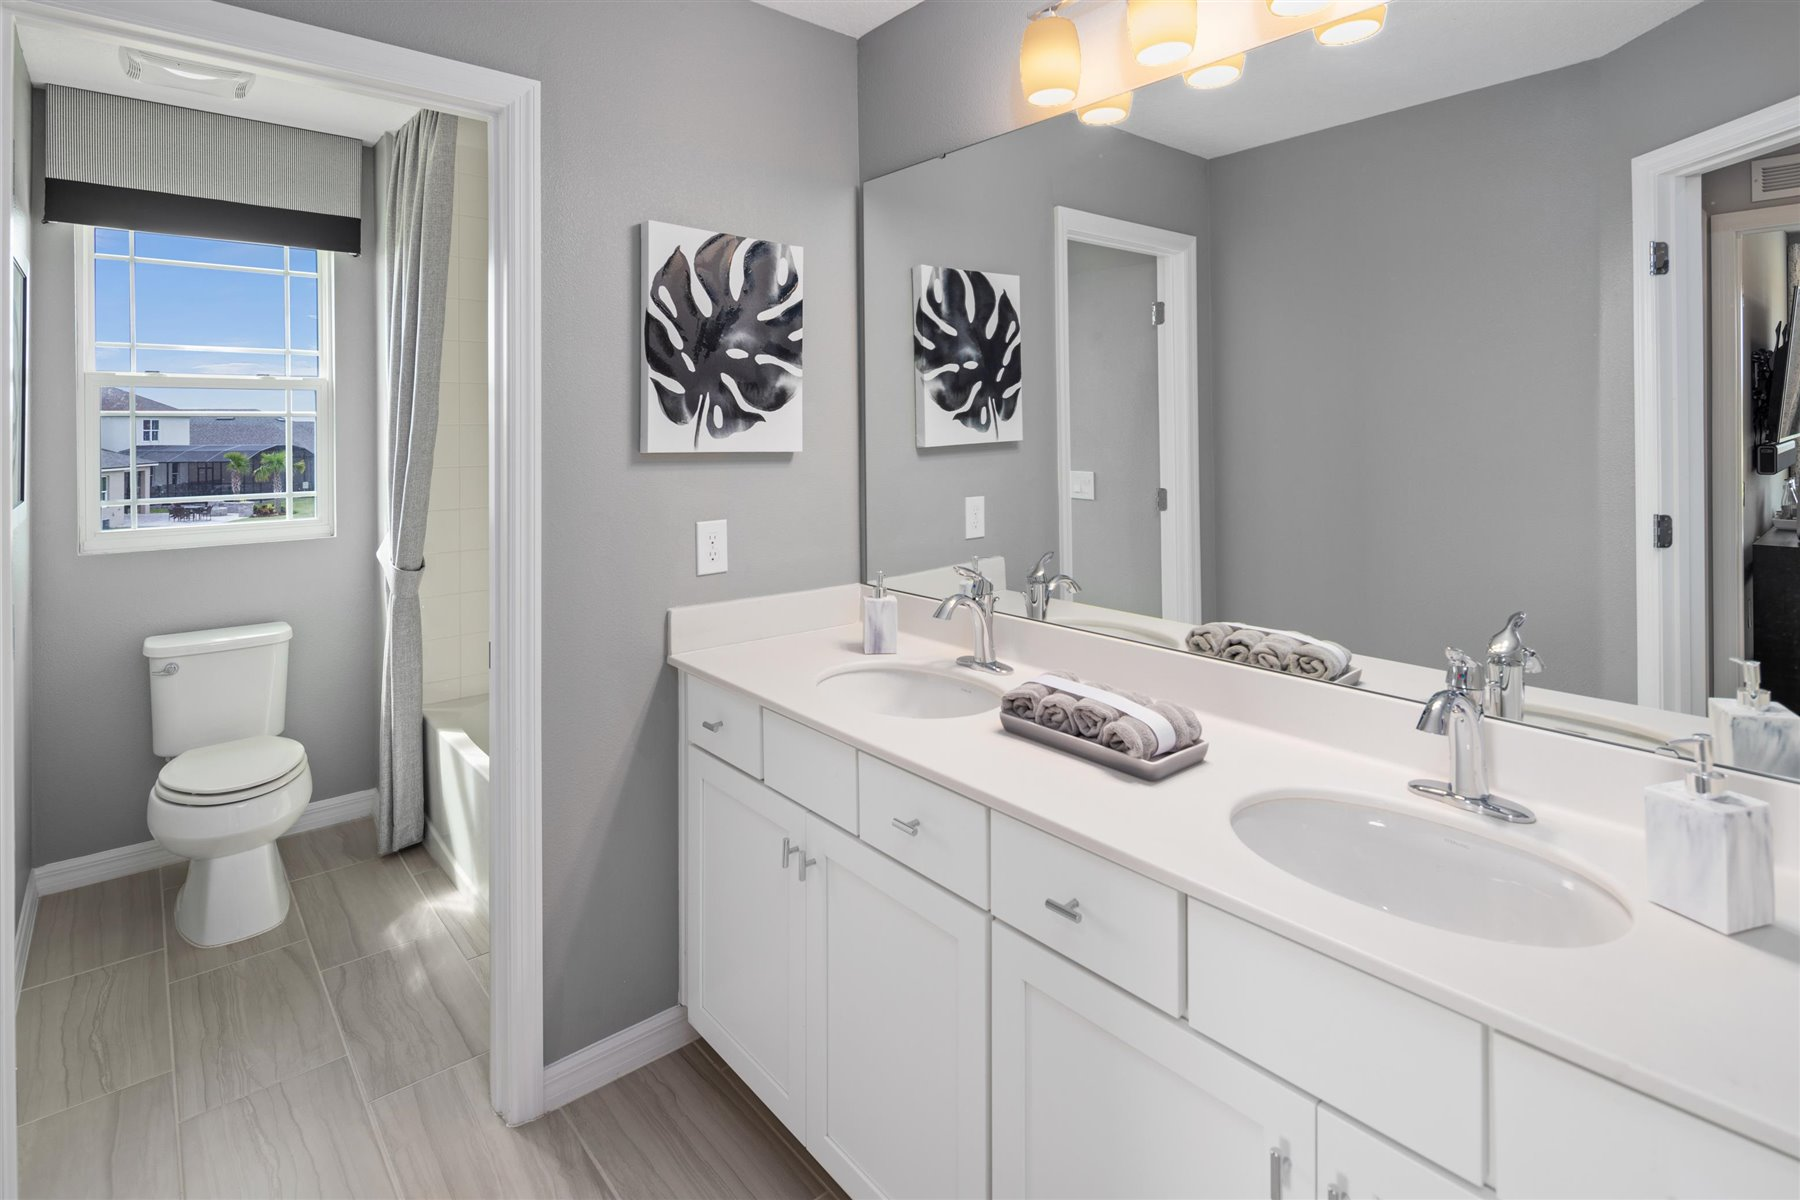 Marabel III Plan Bath at Randal Walk in Orlando Florida by Mattamy Homes